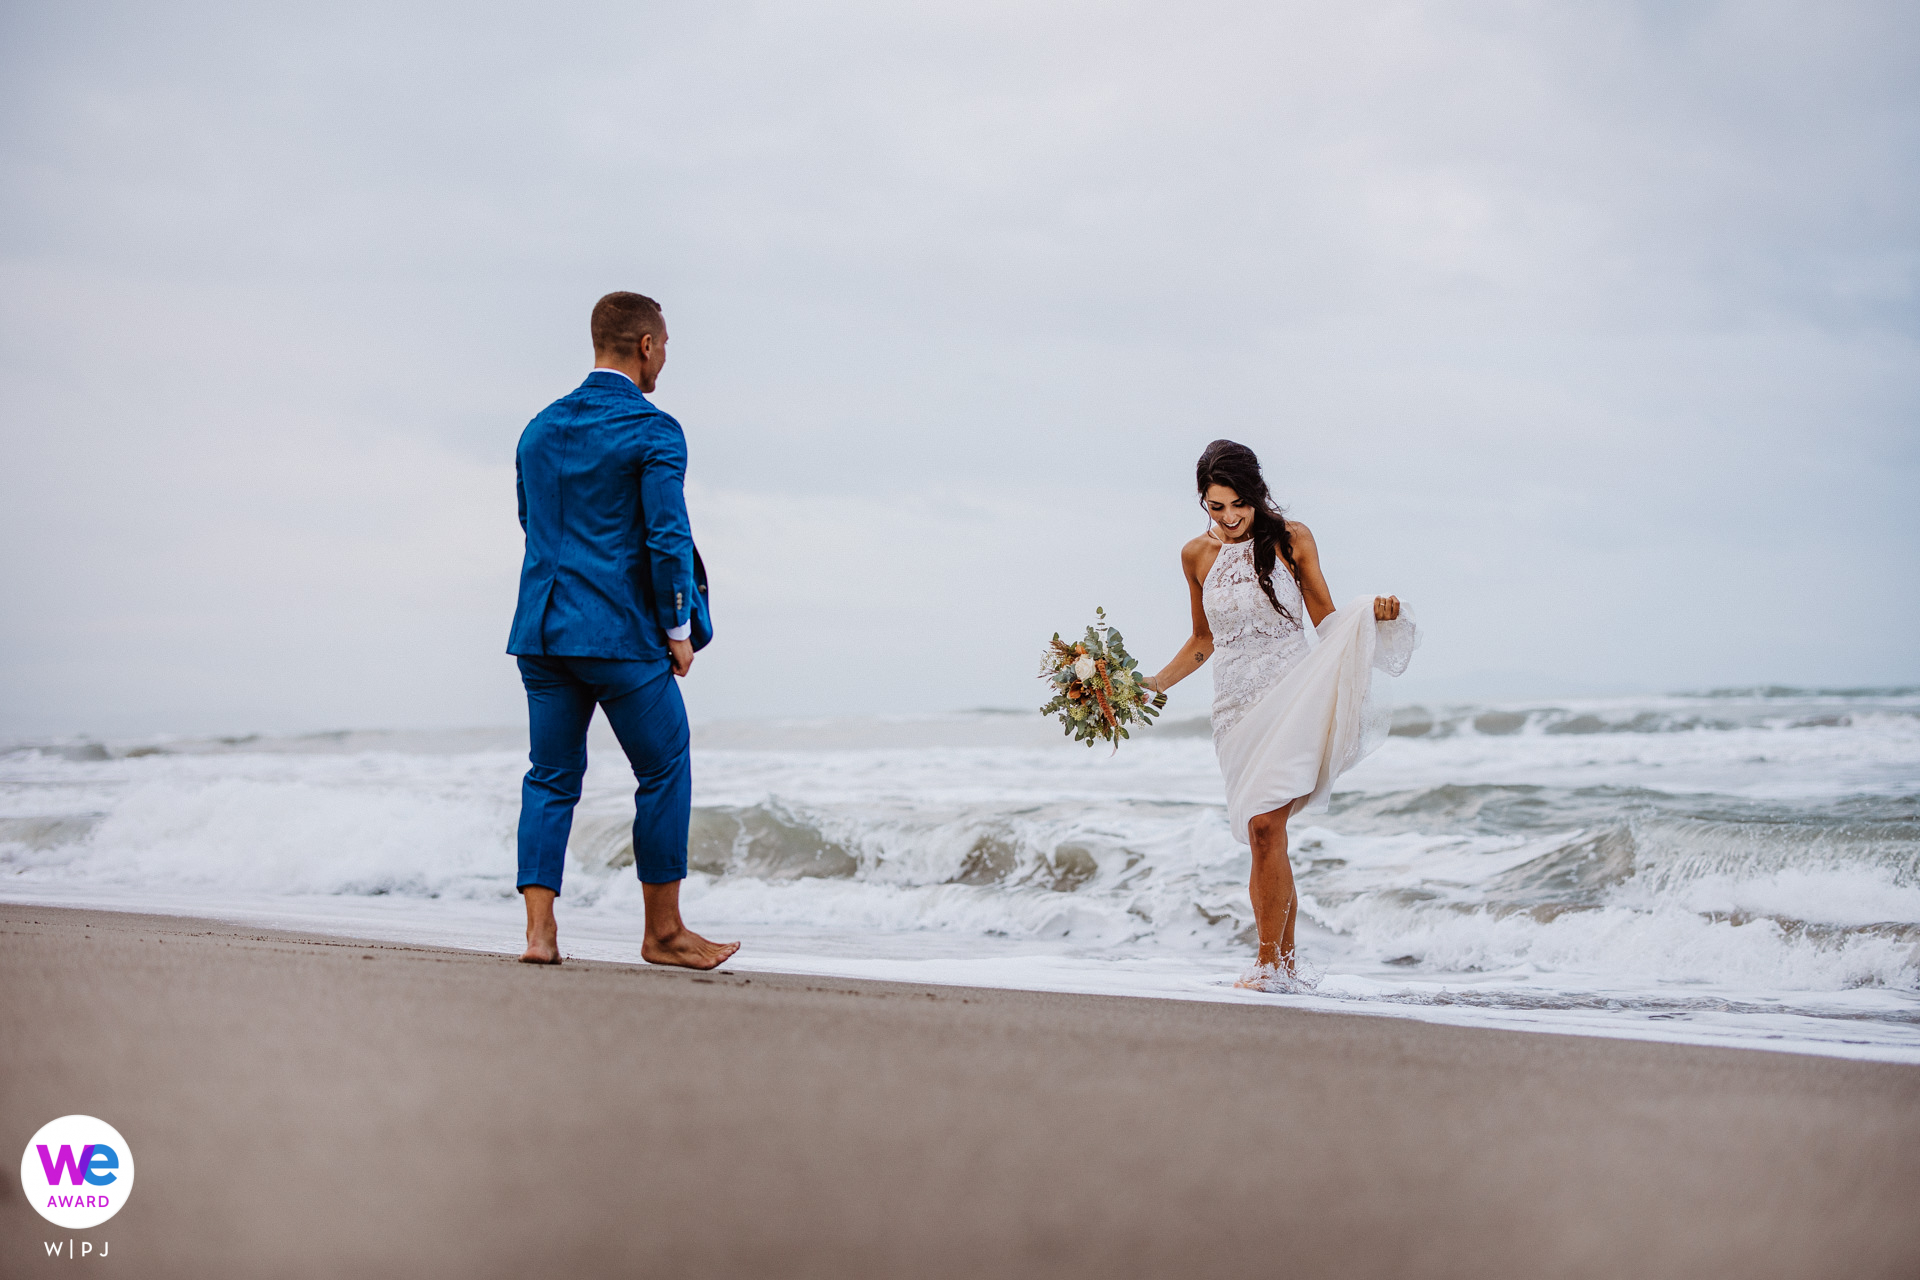 Fiumara Beach Wedding Photo in Italy | The bride is carrying her bouquet and lifting her wedding gown